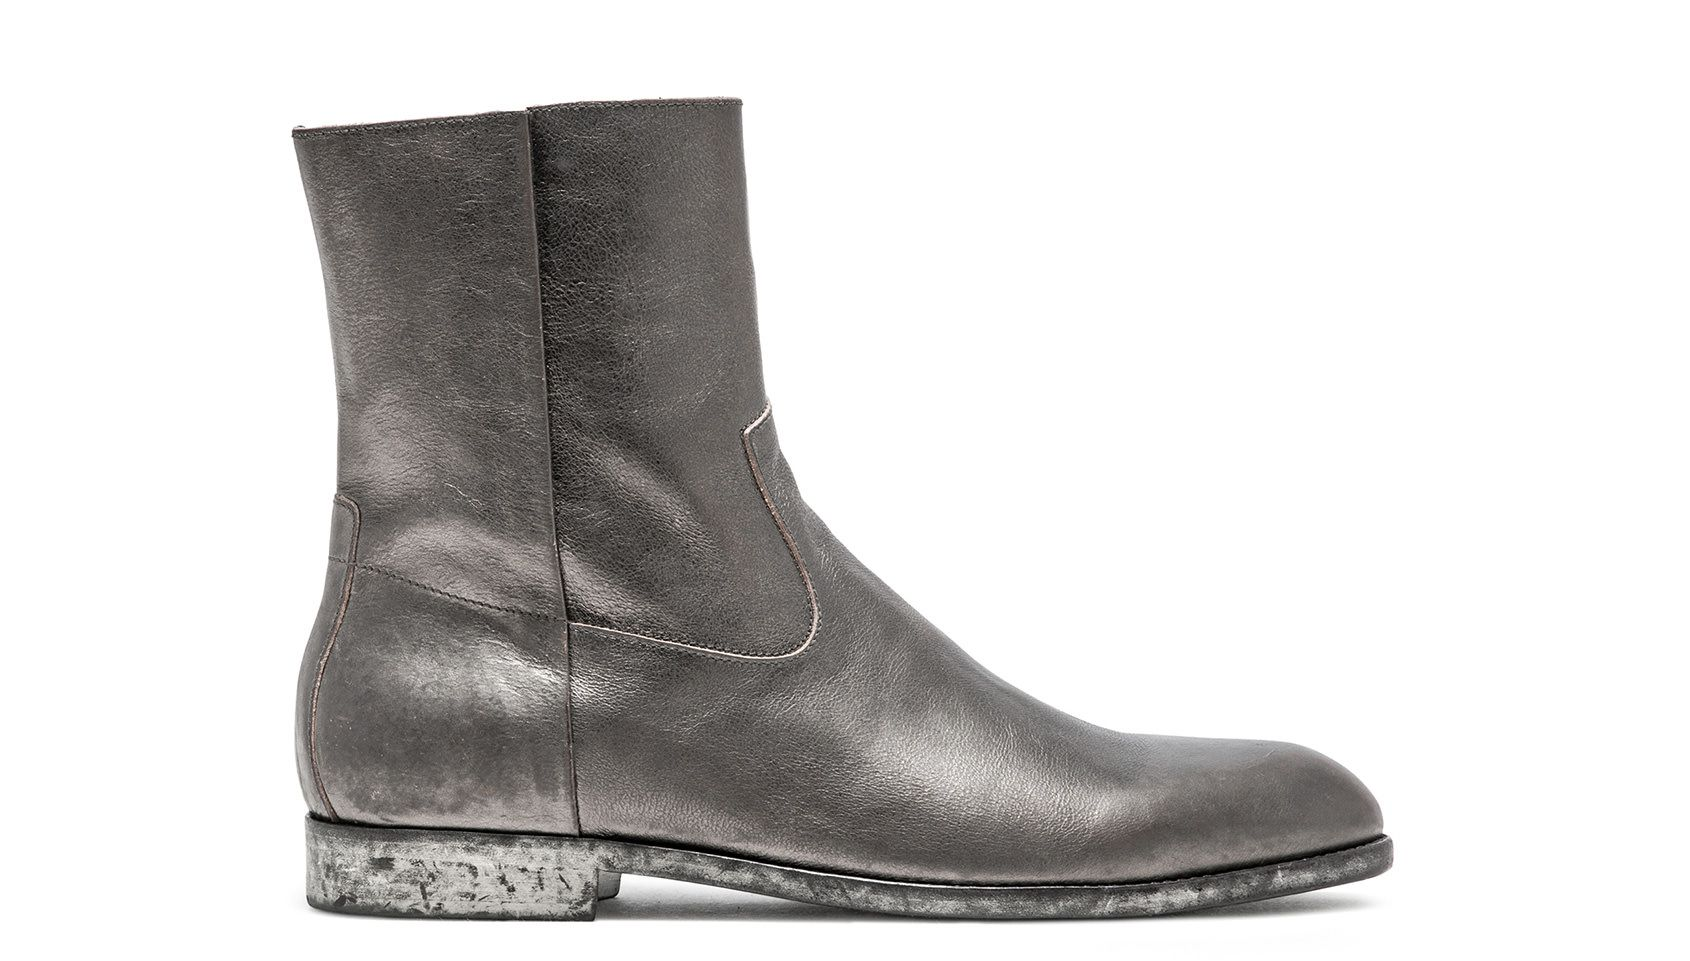 Buttero Floyd Ankle Boots In Graphite Leather Fall Shoes Boots Boots And Sneakers